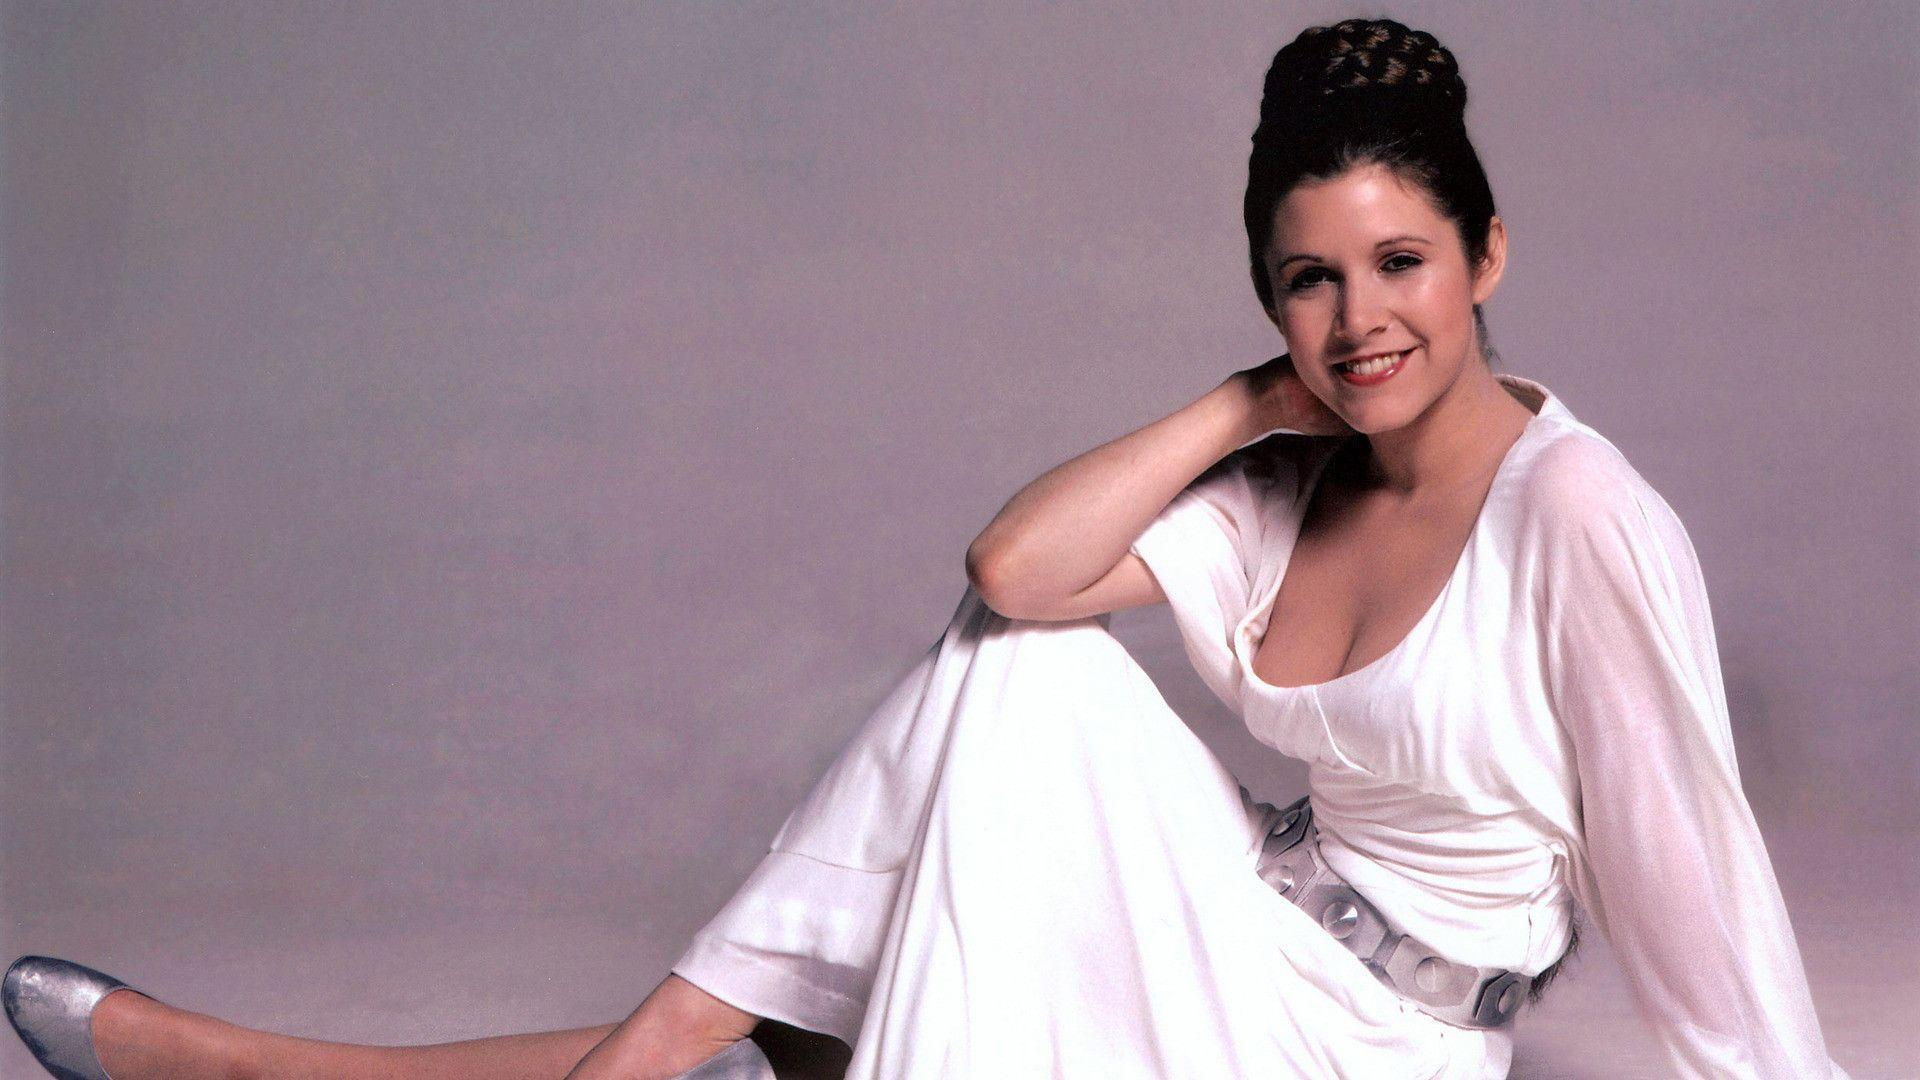 Carrie Fisher Wallpapers Download Free HD